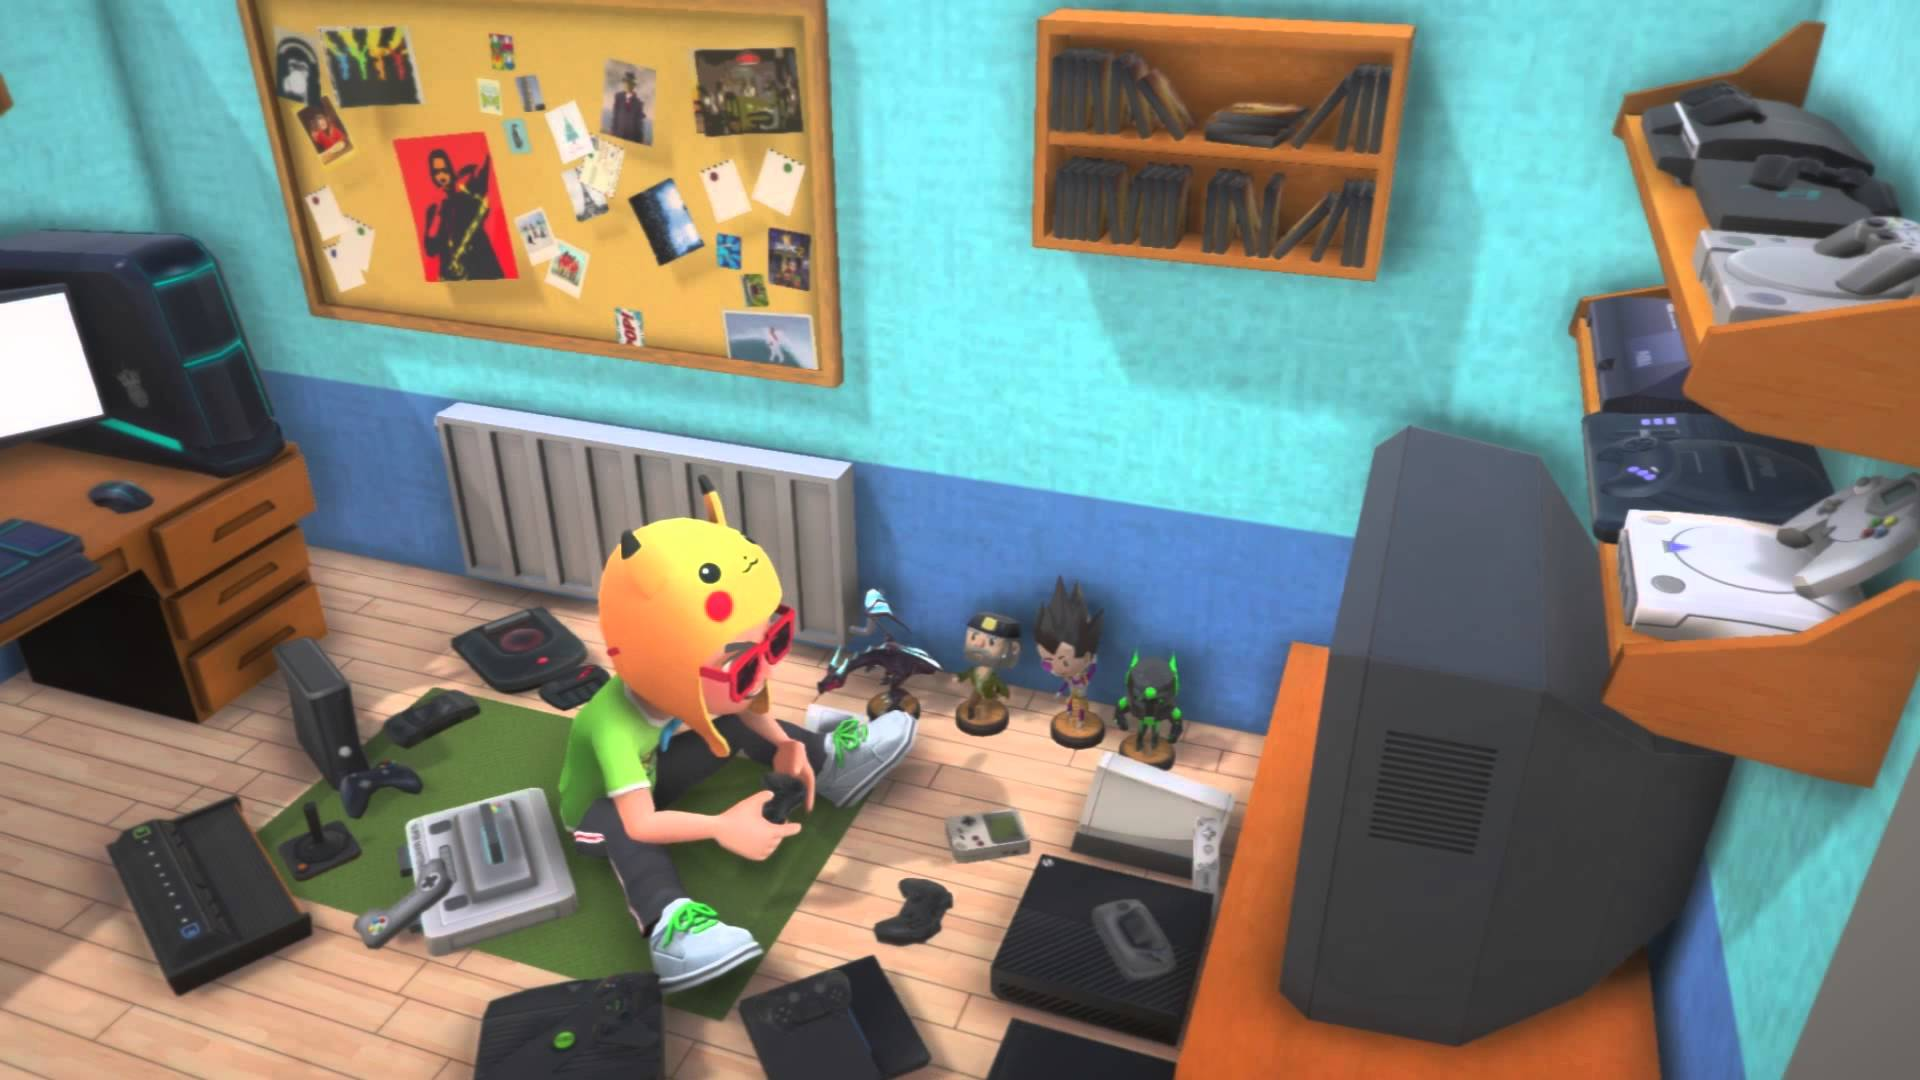 YouTubers Play A Game About Being YouTubers, Because YouTube el videojuego Youtubers life ya está listo2